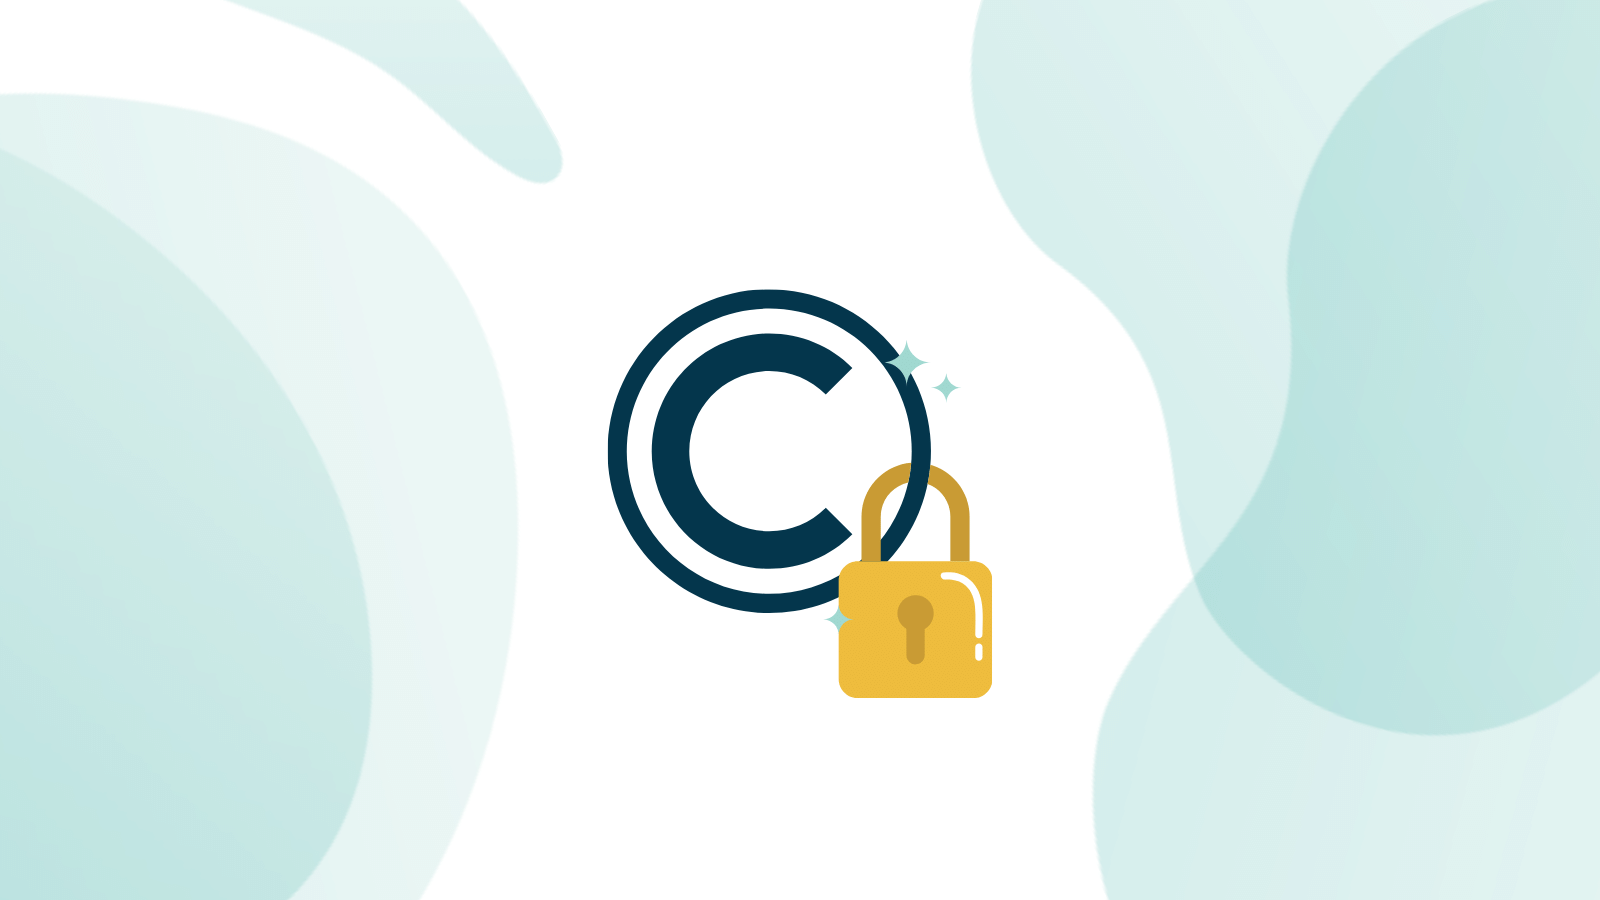 Dark navy copyright logo with a yellow padlock attached to the bottom right